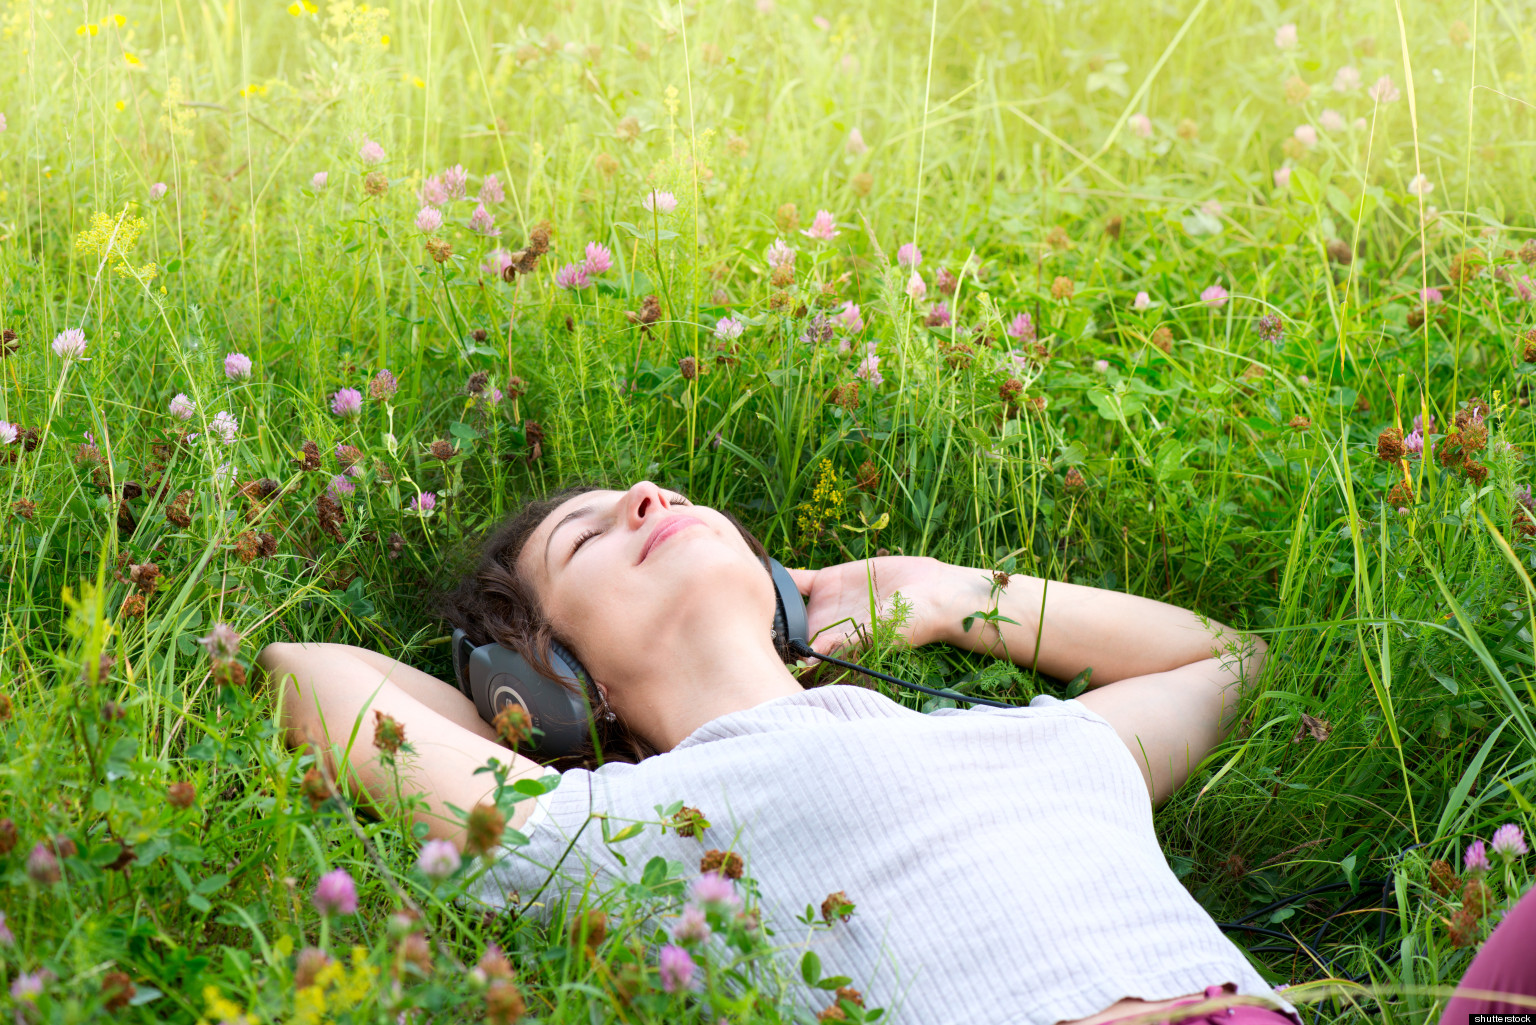 Relaxing Music: 20 Songs For A Chilled-Out Weekend (LISTEN)